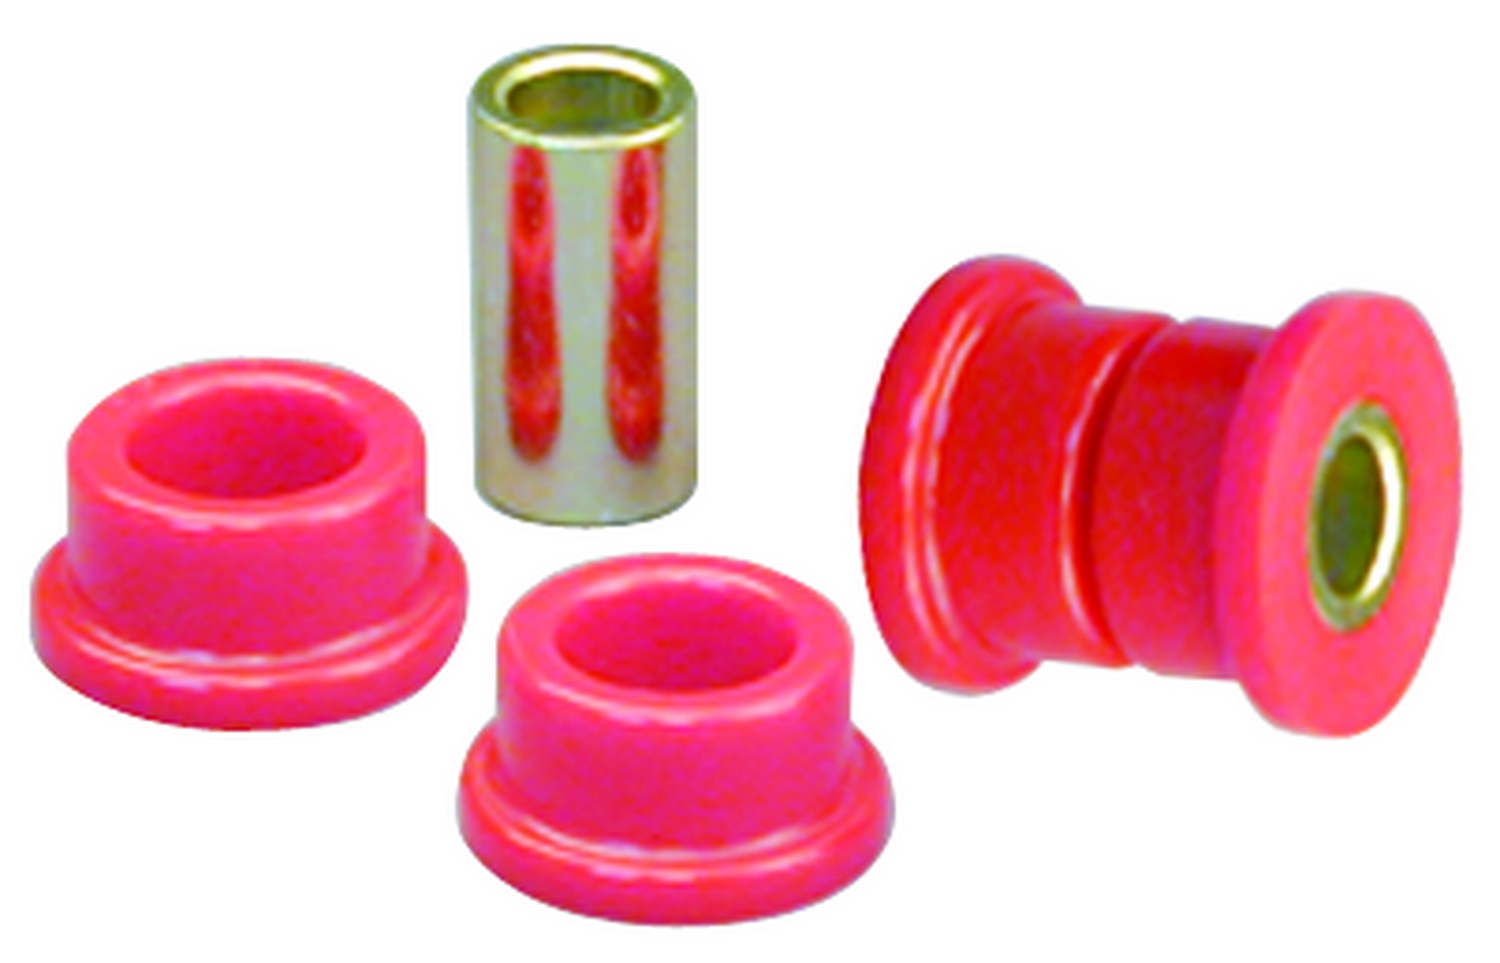 Prothane 19-607 Pivot Bushings